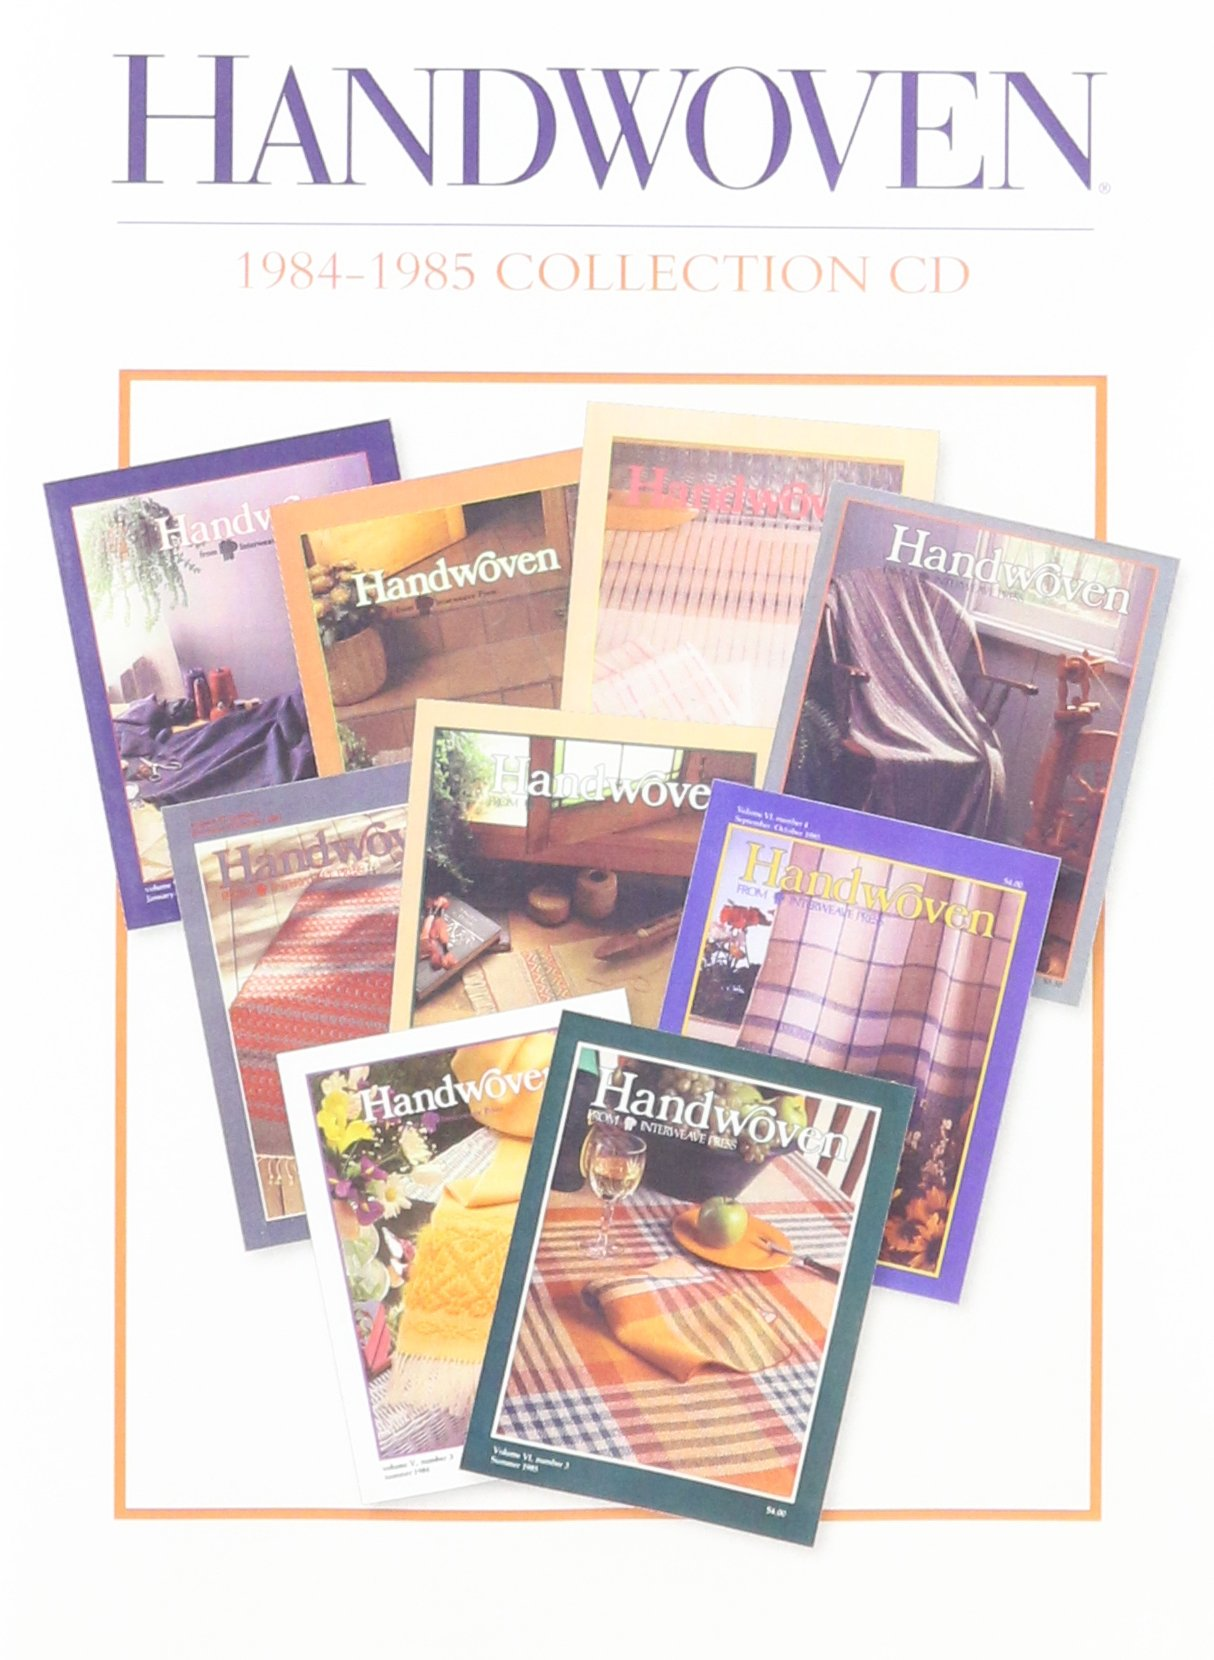 Handwoven 1984-1985 Collection Cd